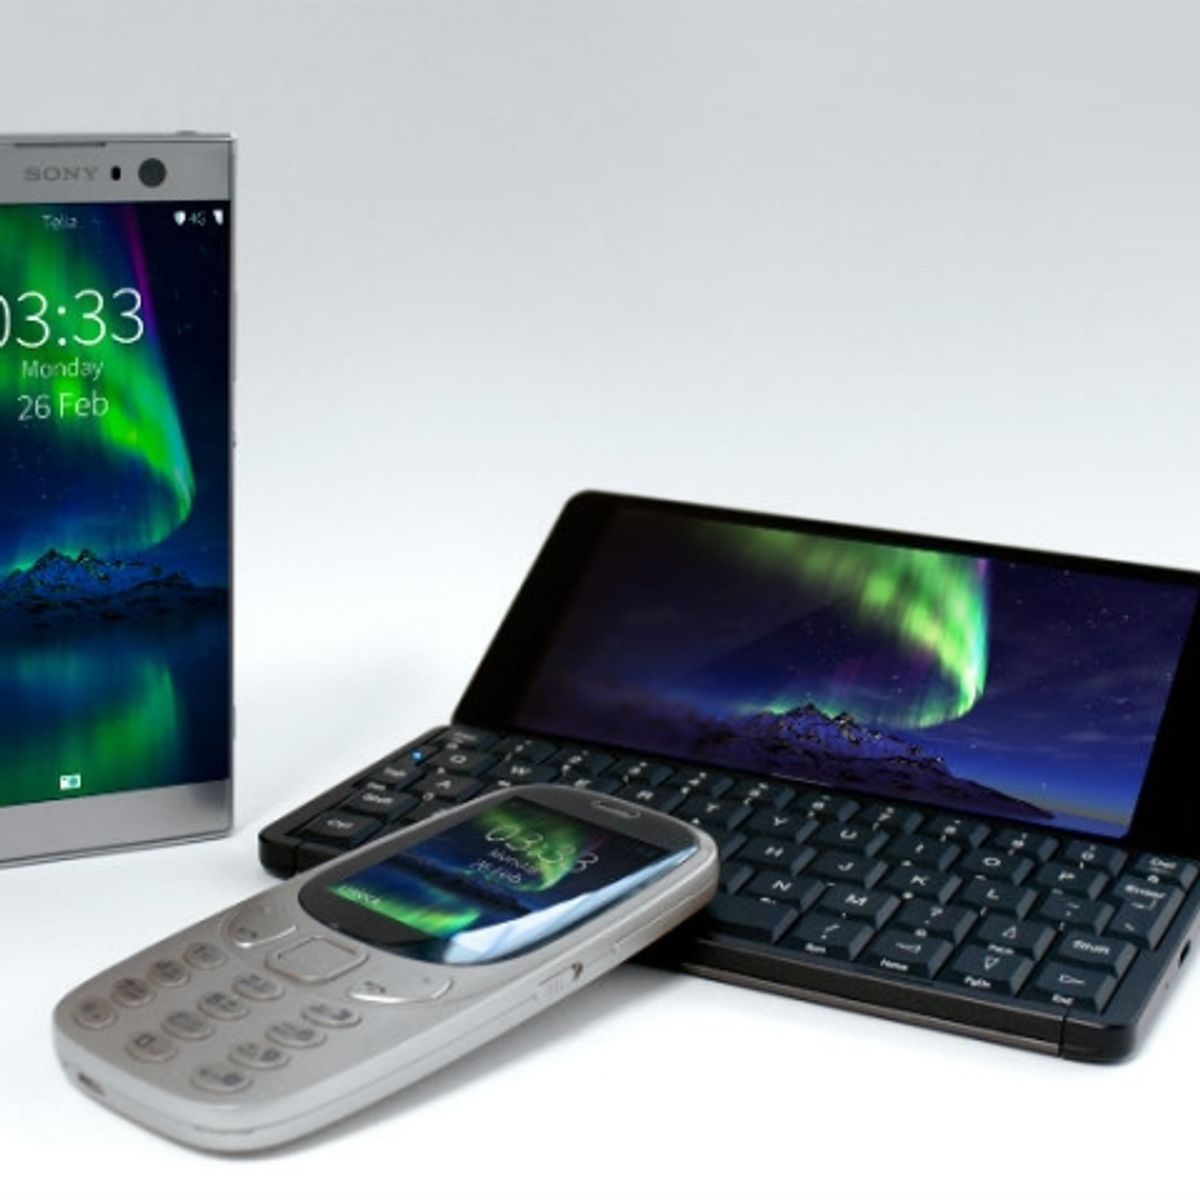 Sailfish 3 OS with support for new devices, 4G feature